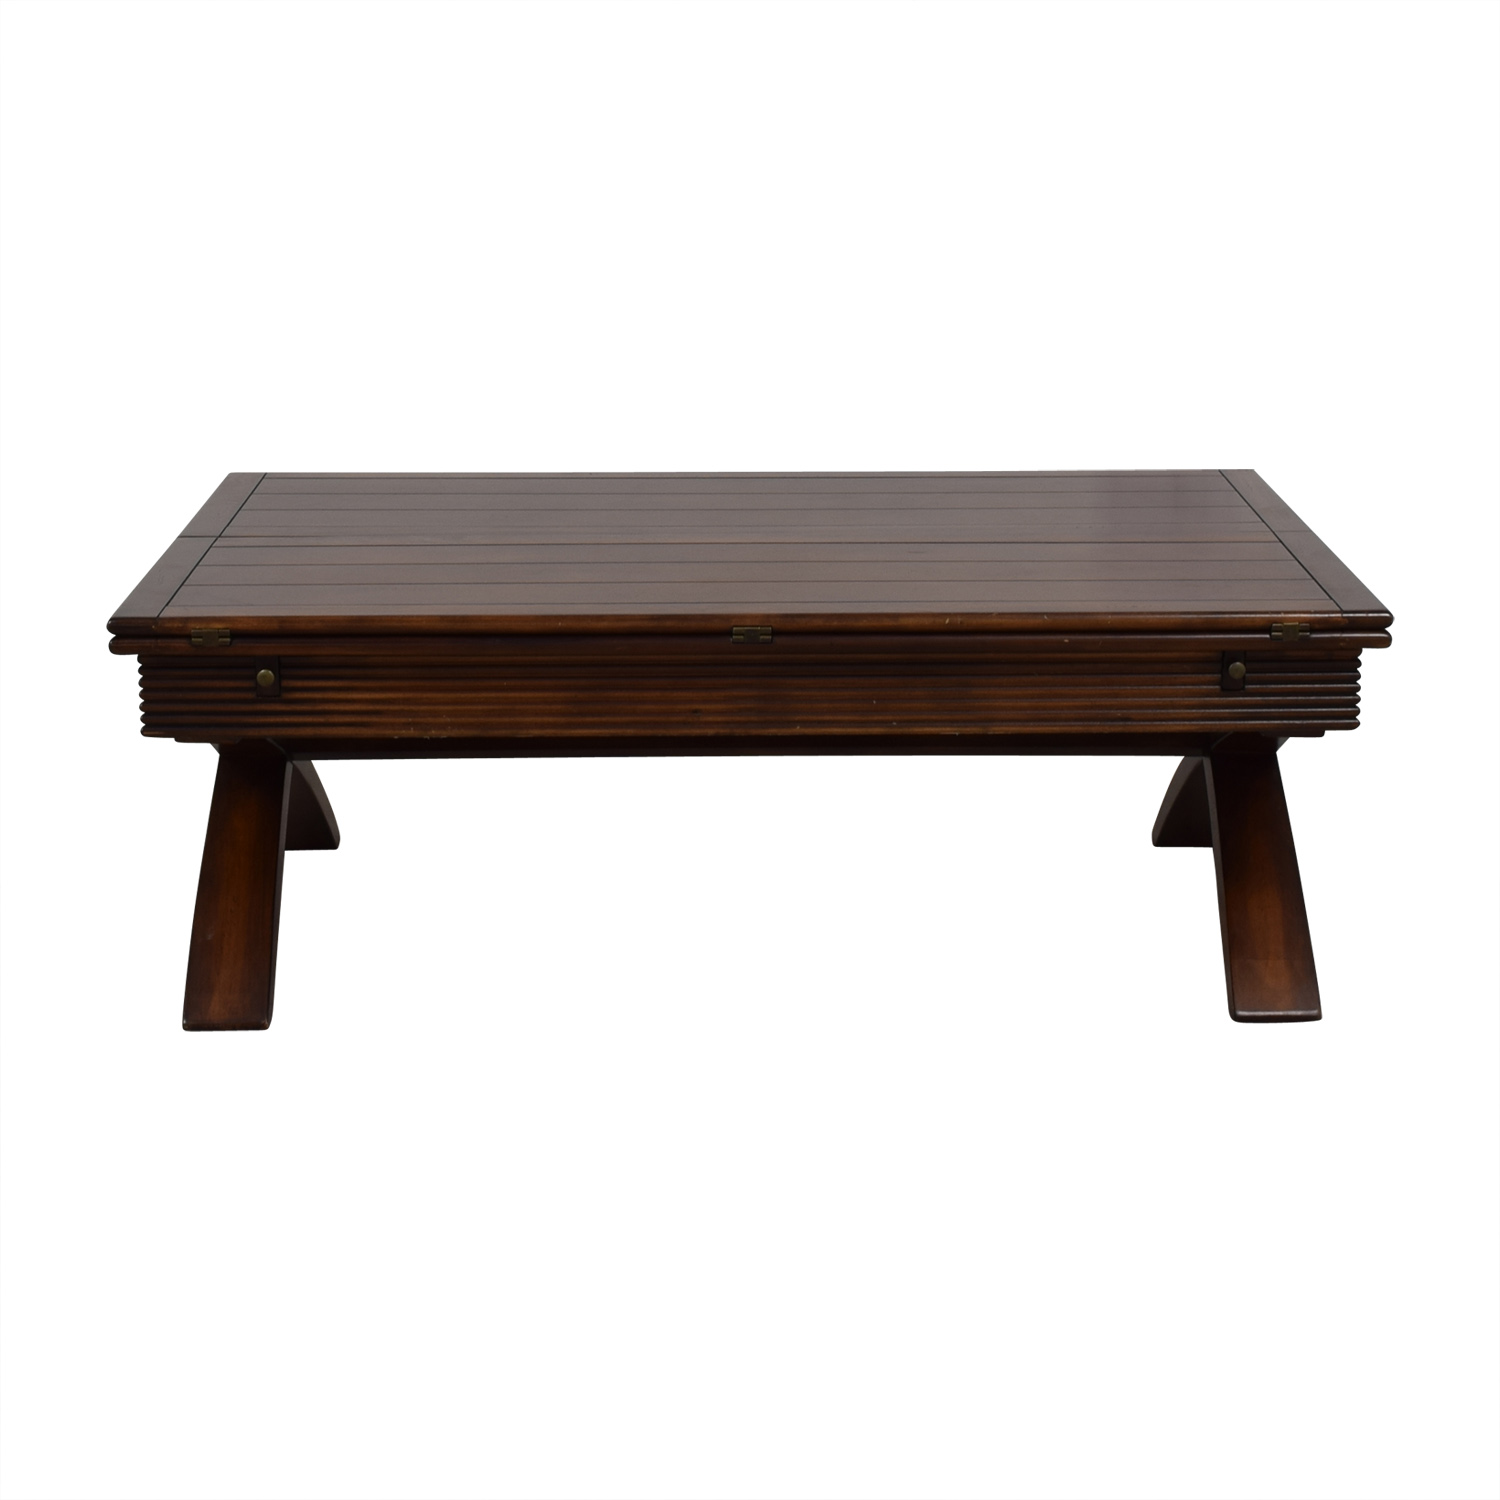 Coffee Table Extendable.74 Off Extendable Coffee Table Tables